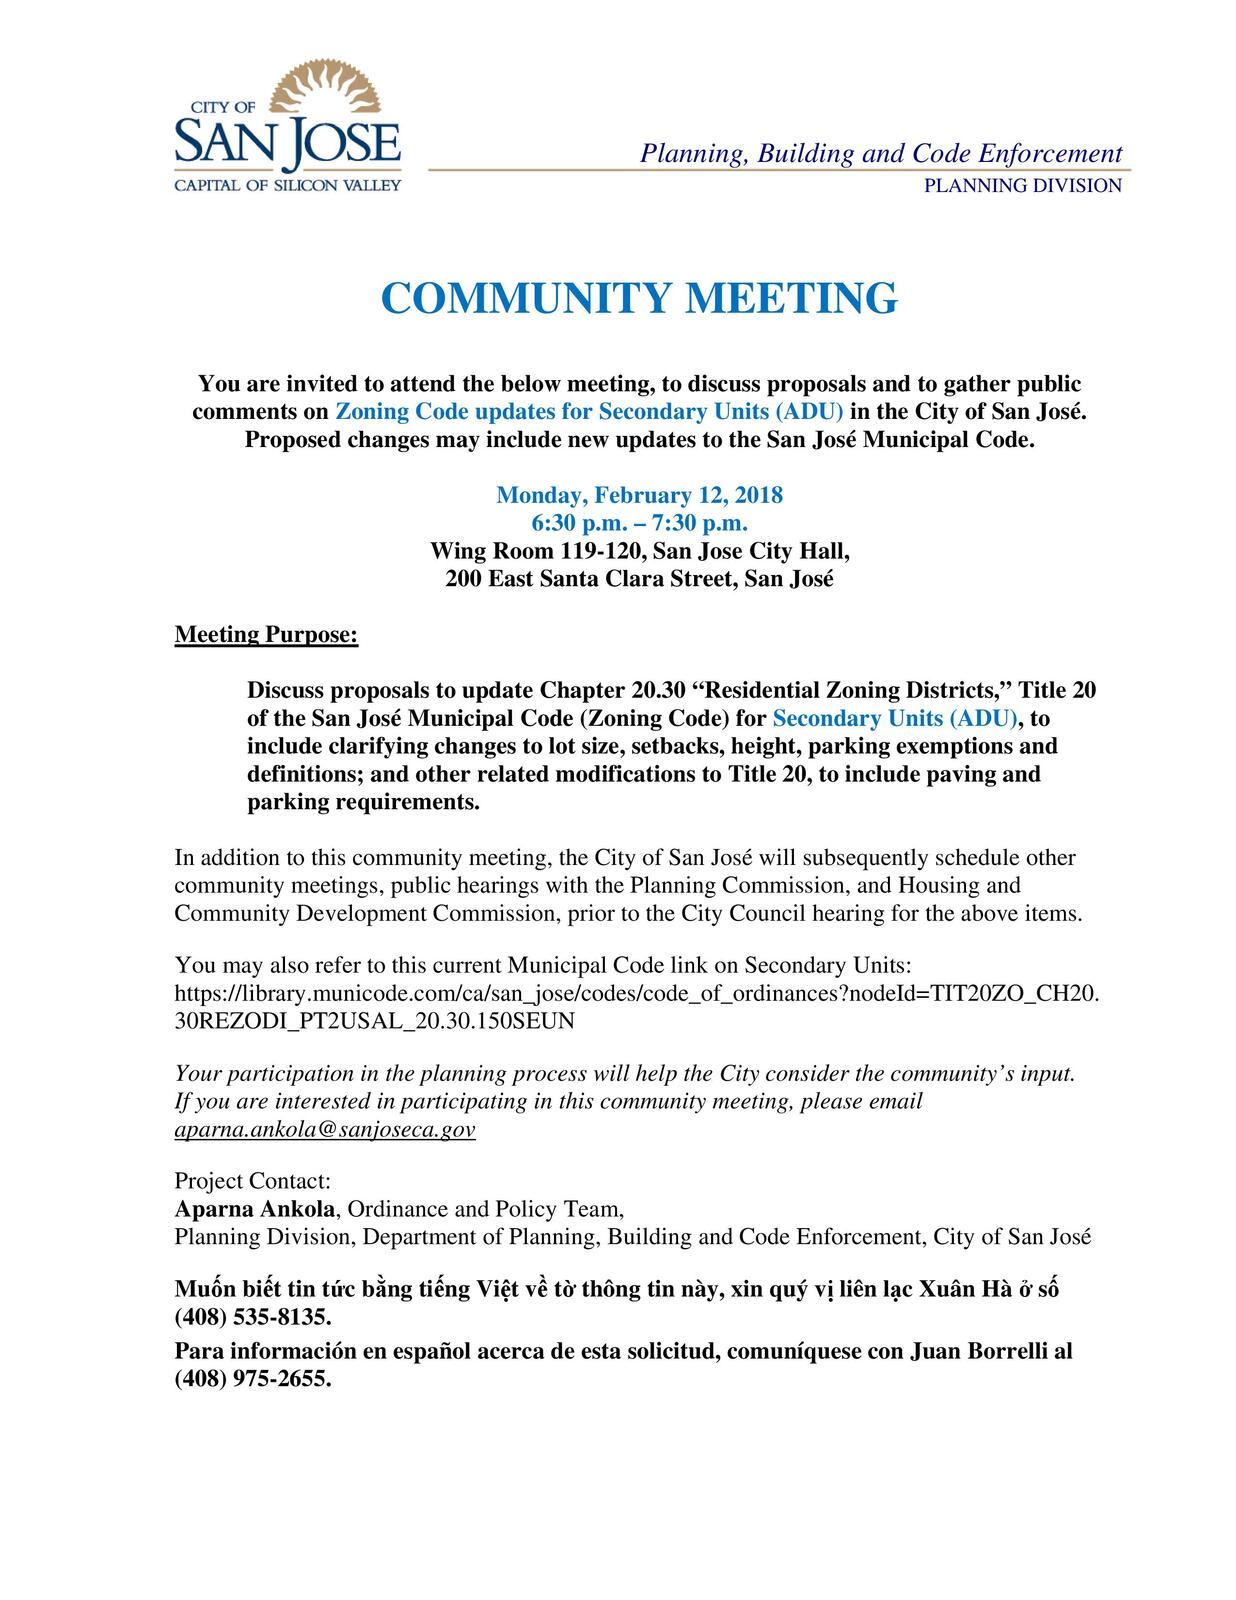 Community meeting on zoning code updates for building of secondary